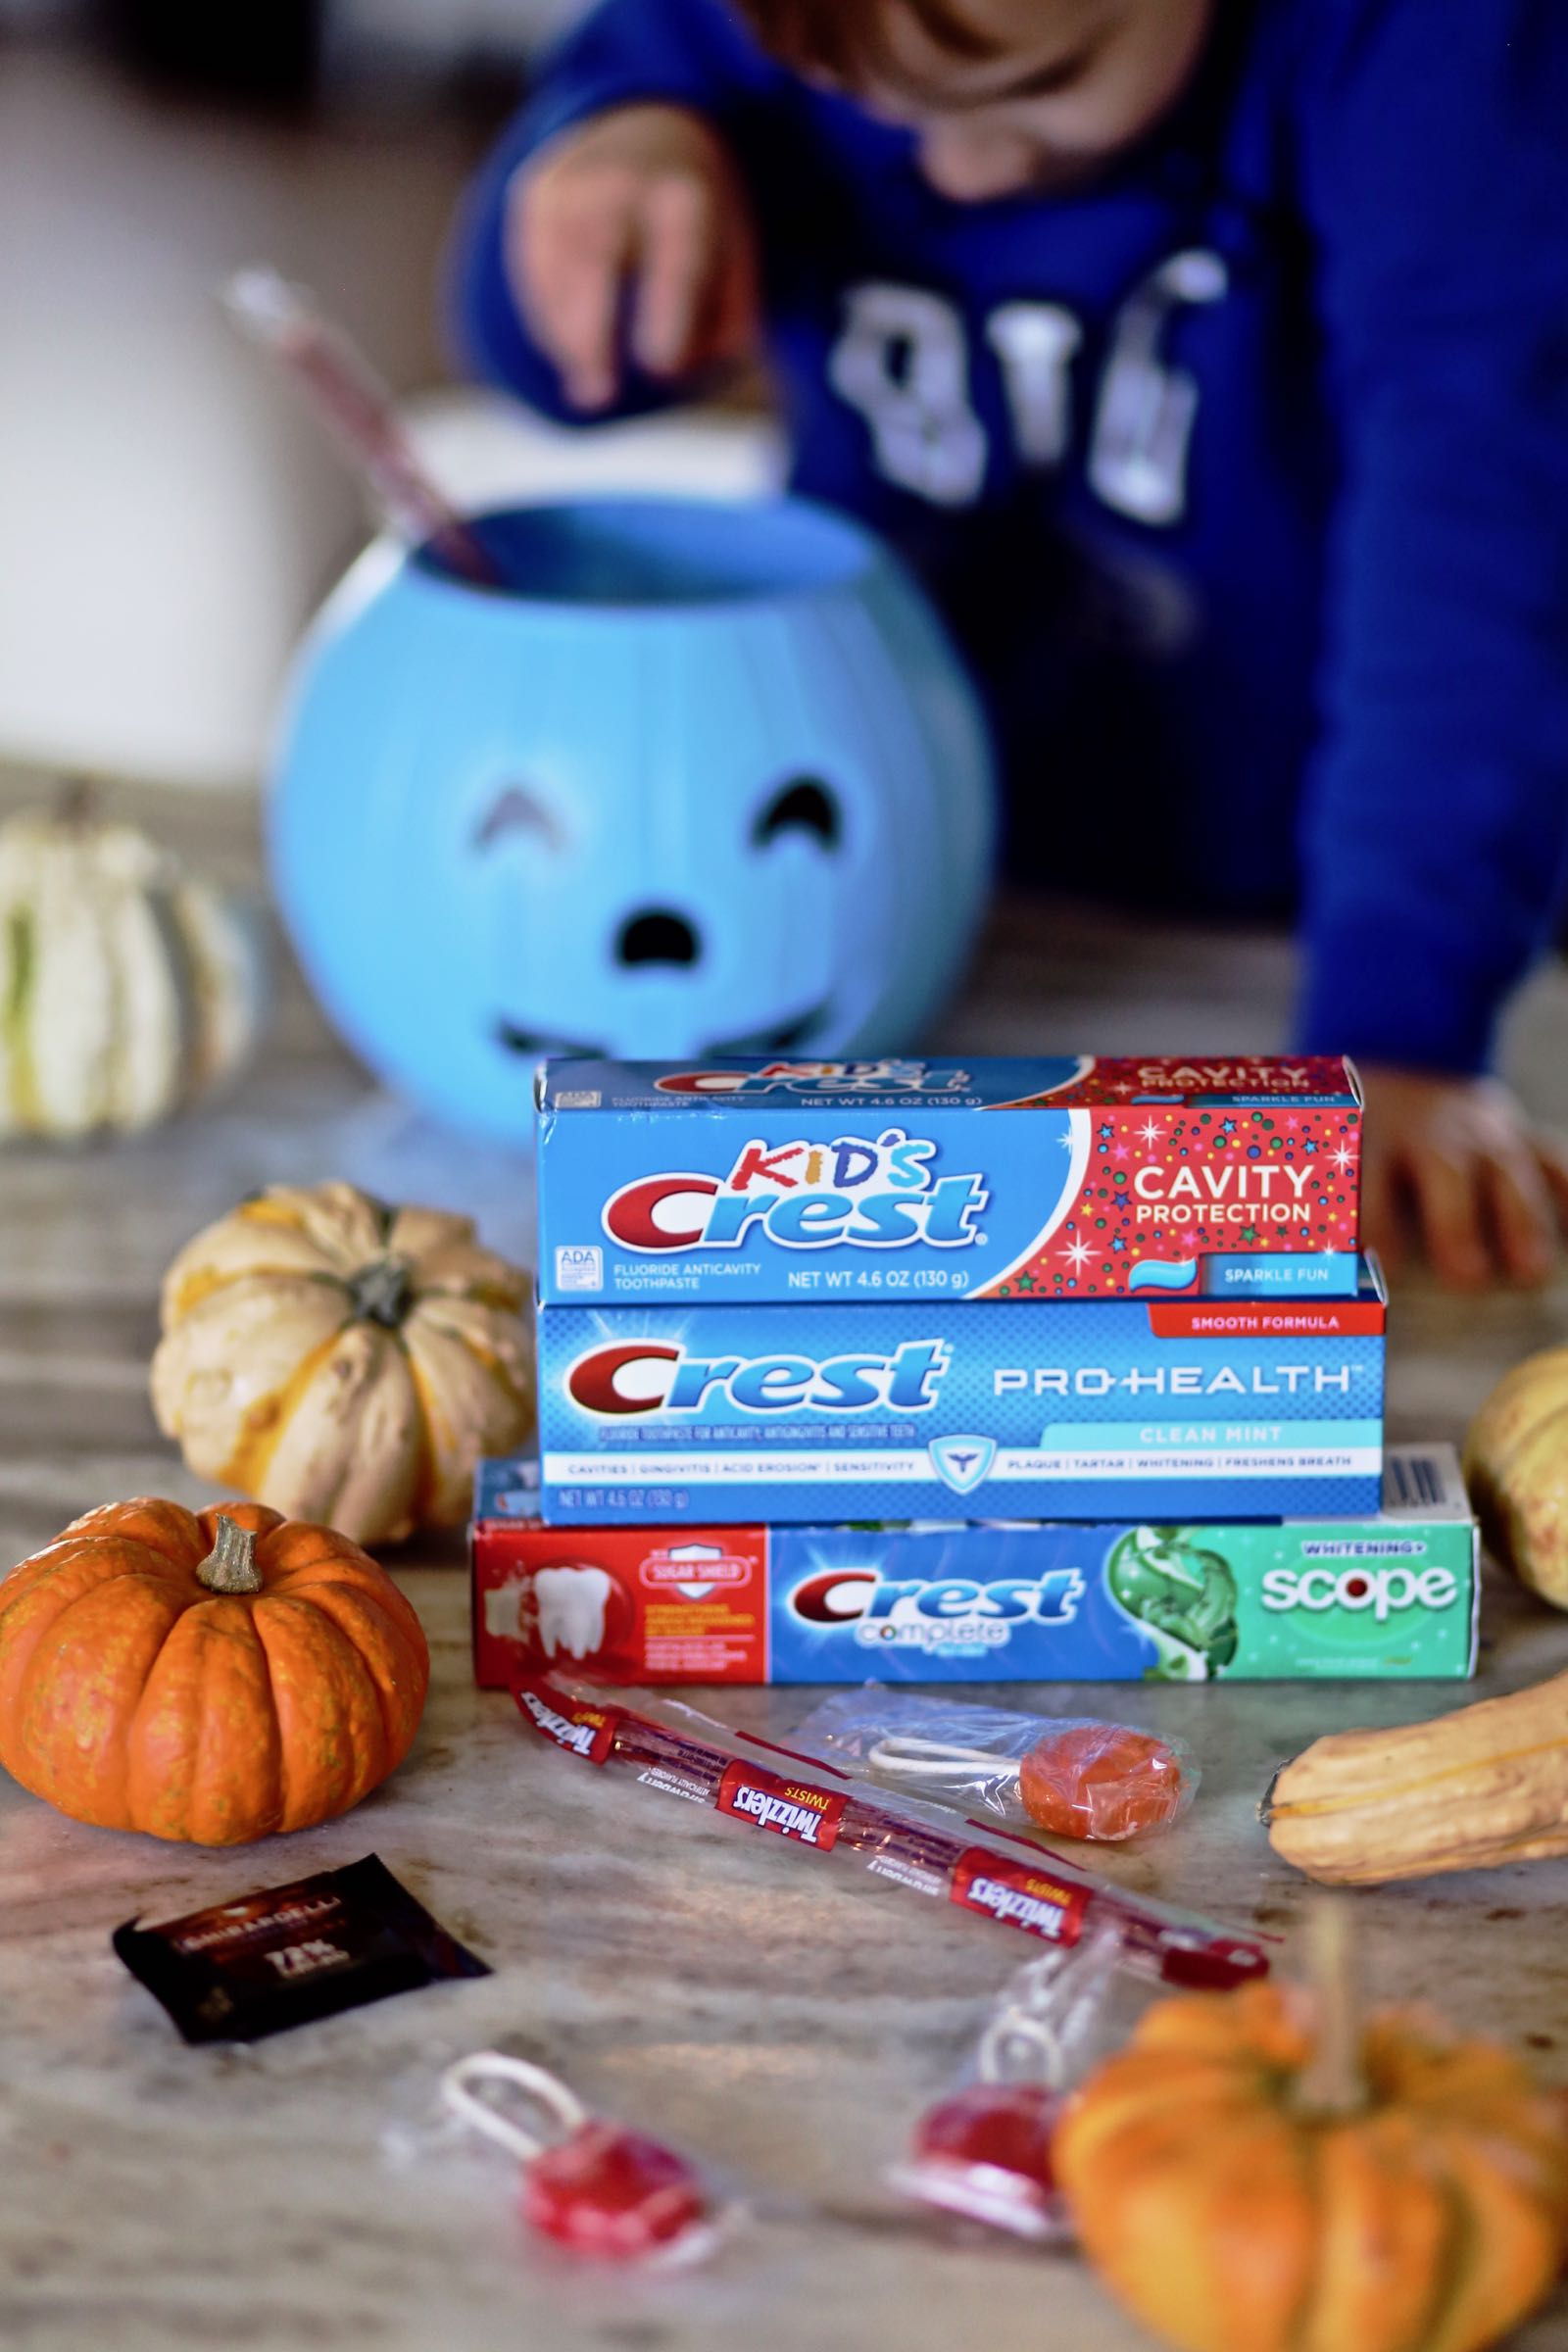 Get your coupon for Crest toothpaste at Target!